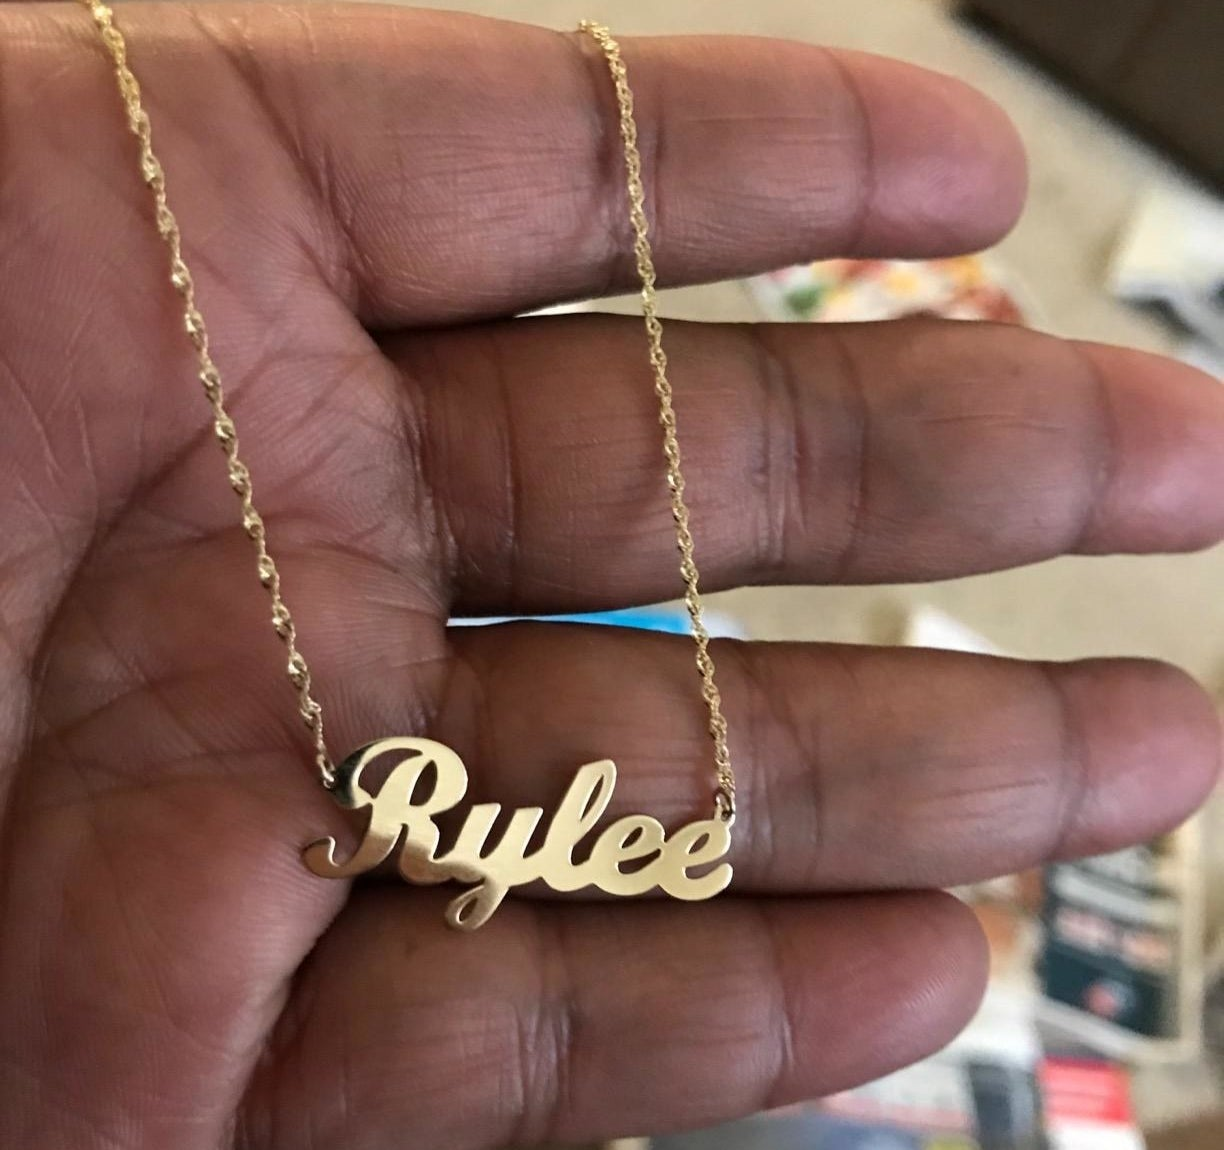 Reviewer holding the necklace, which shows their name in cursive